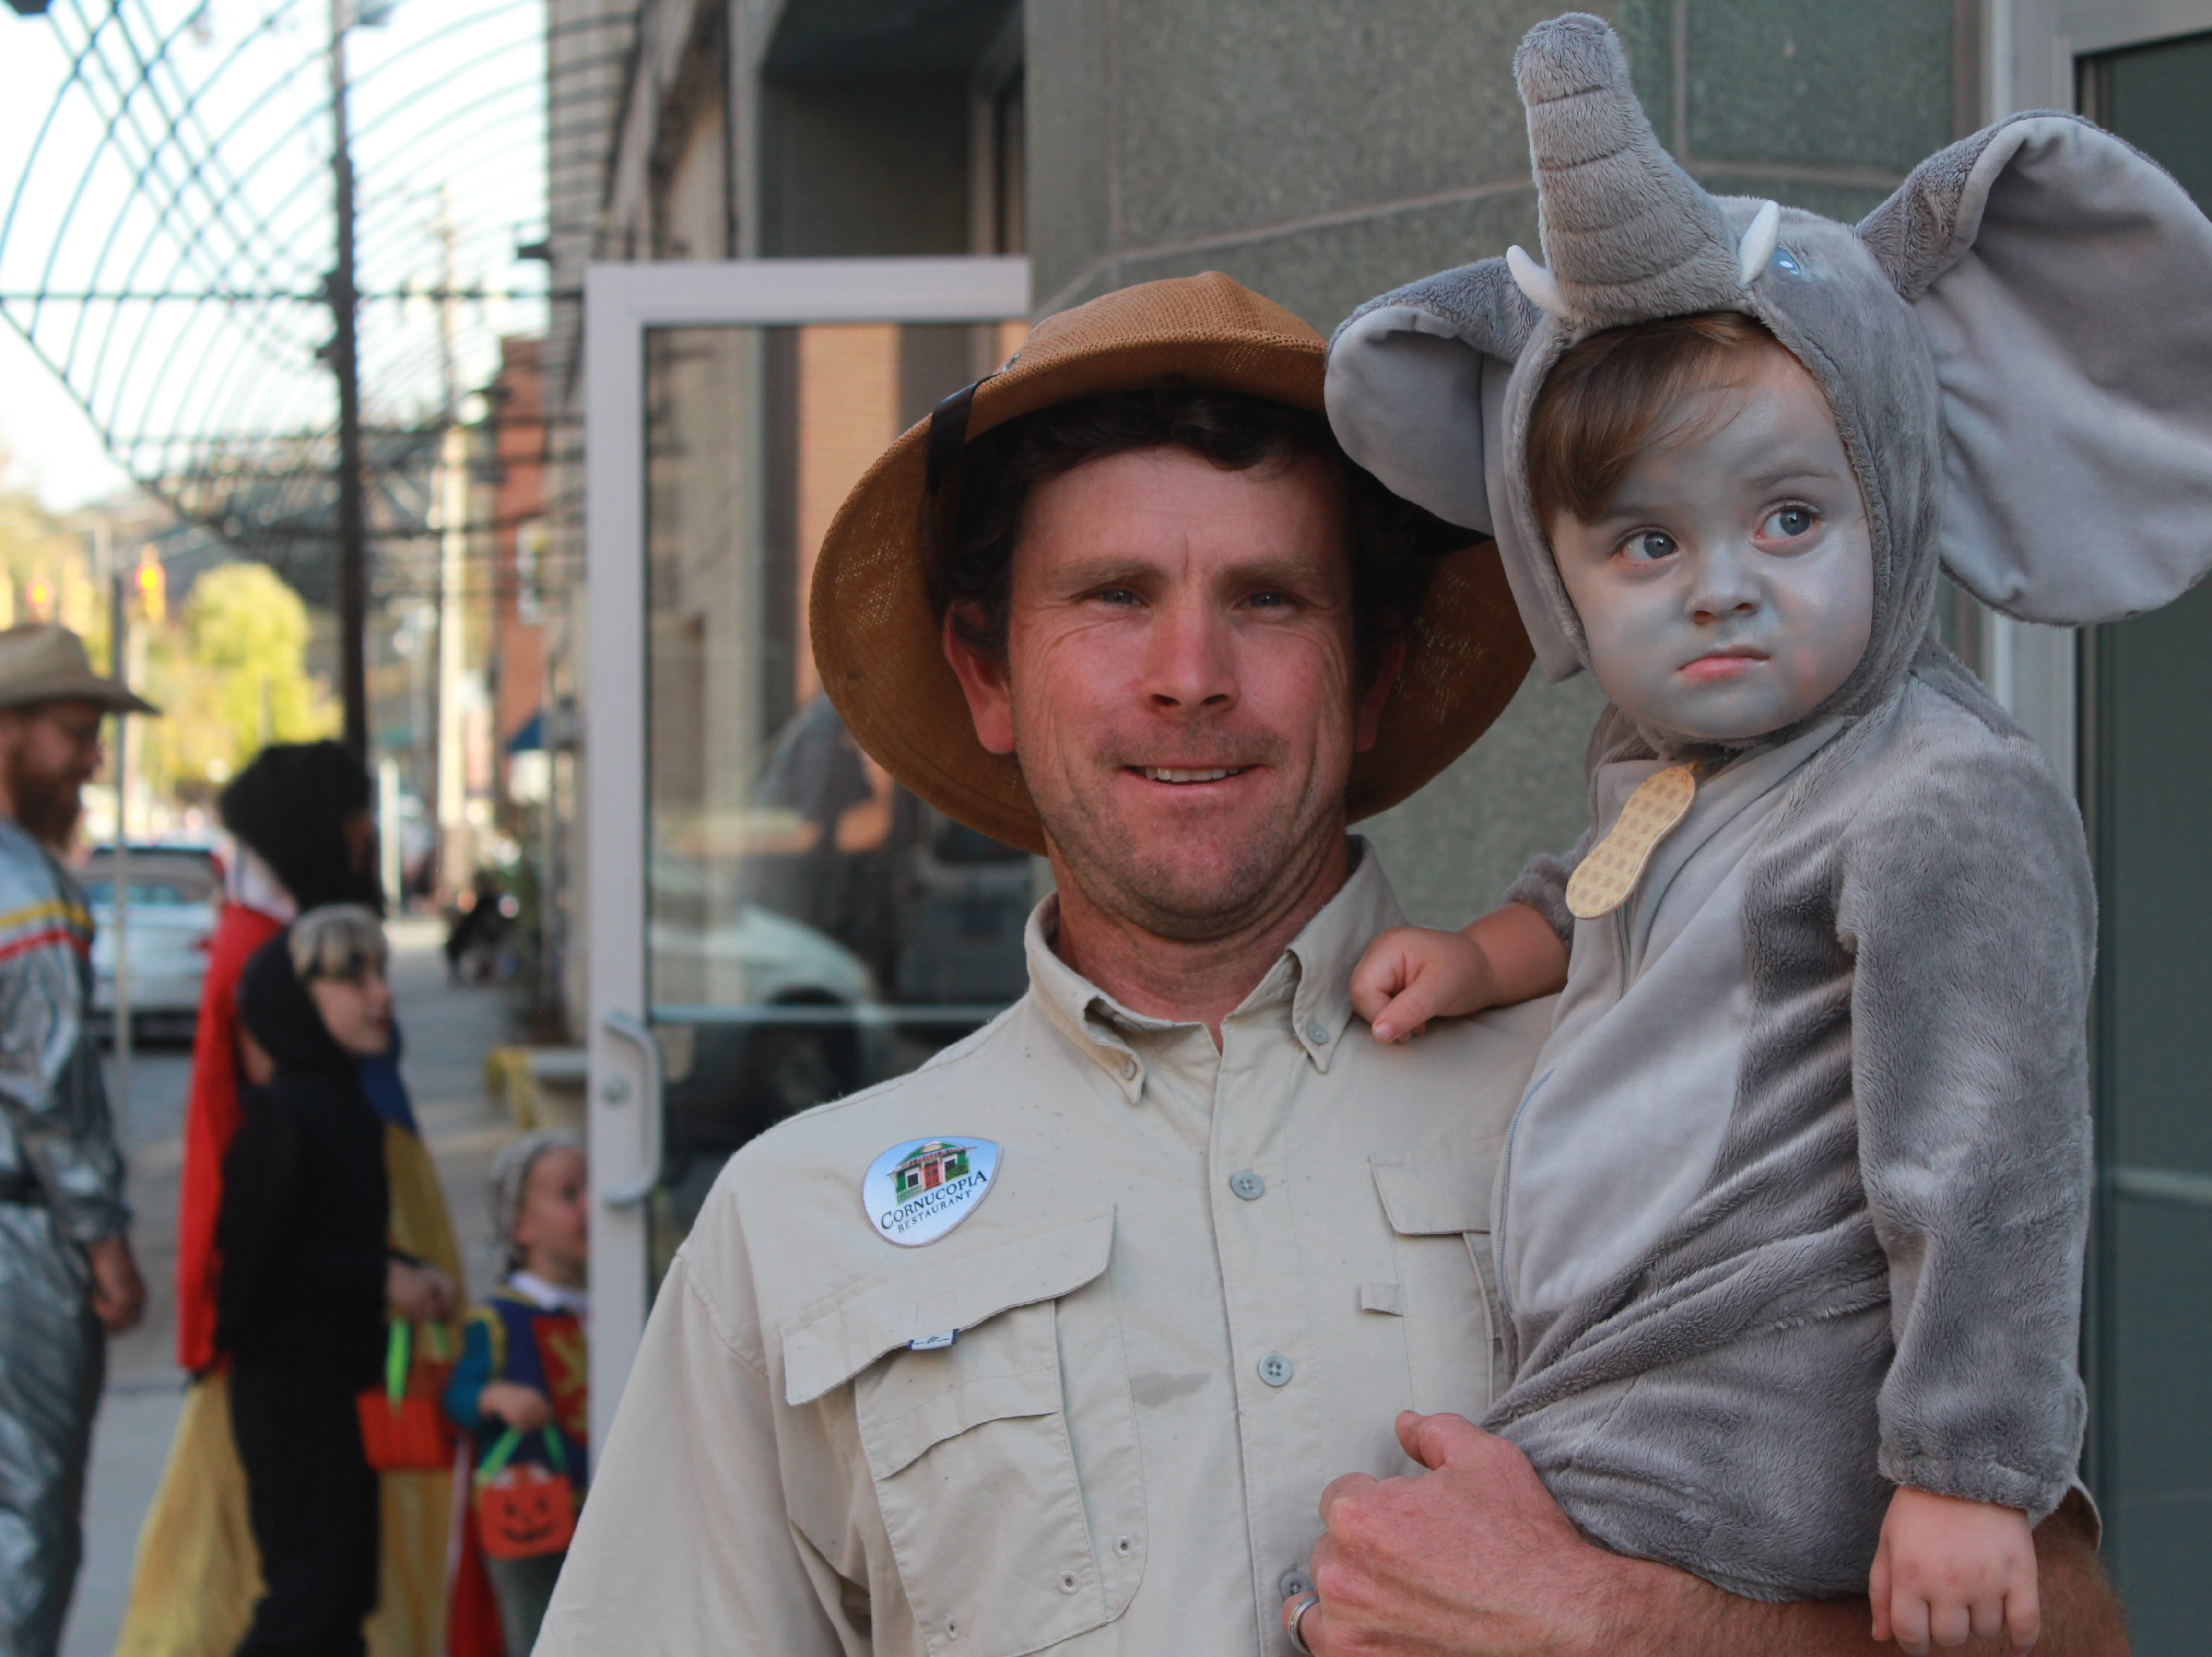 Jeremy and Noah Chandler enjoy a night out as a zookeeper and elephant.